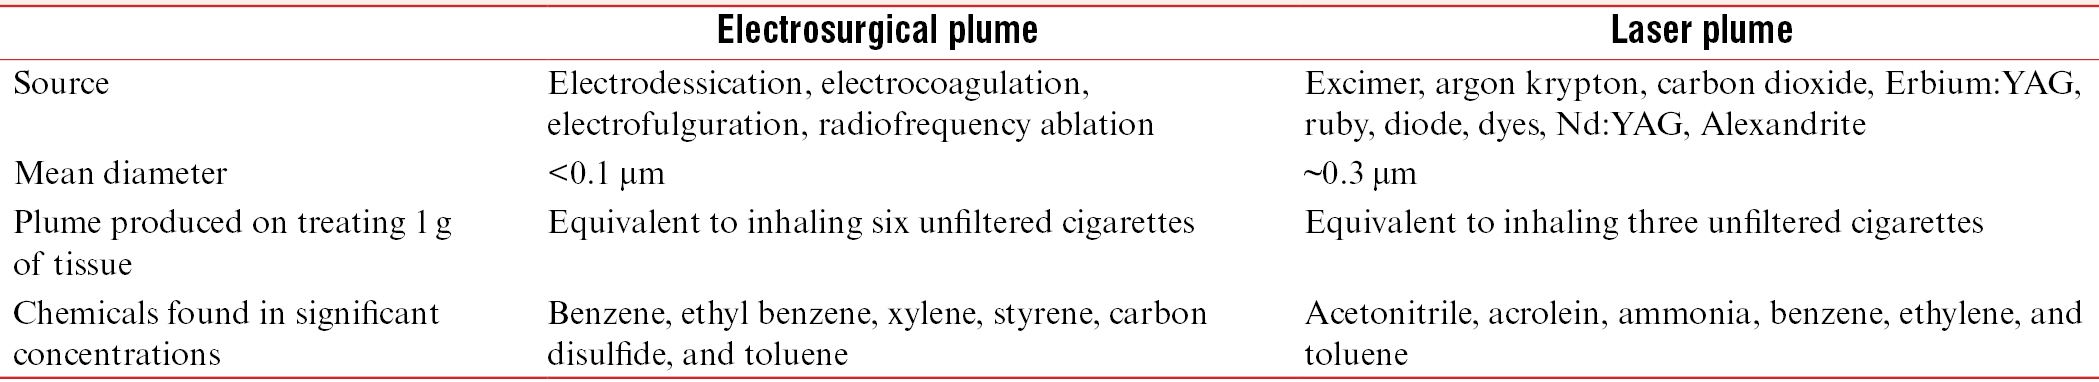 Table 2: Comparison of electrosurgical and laser plume